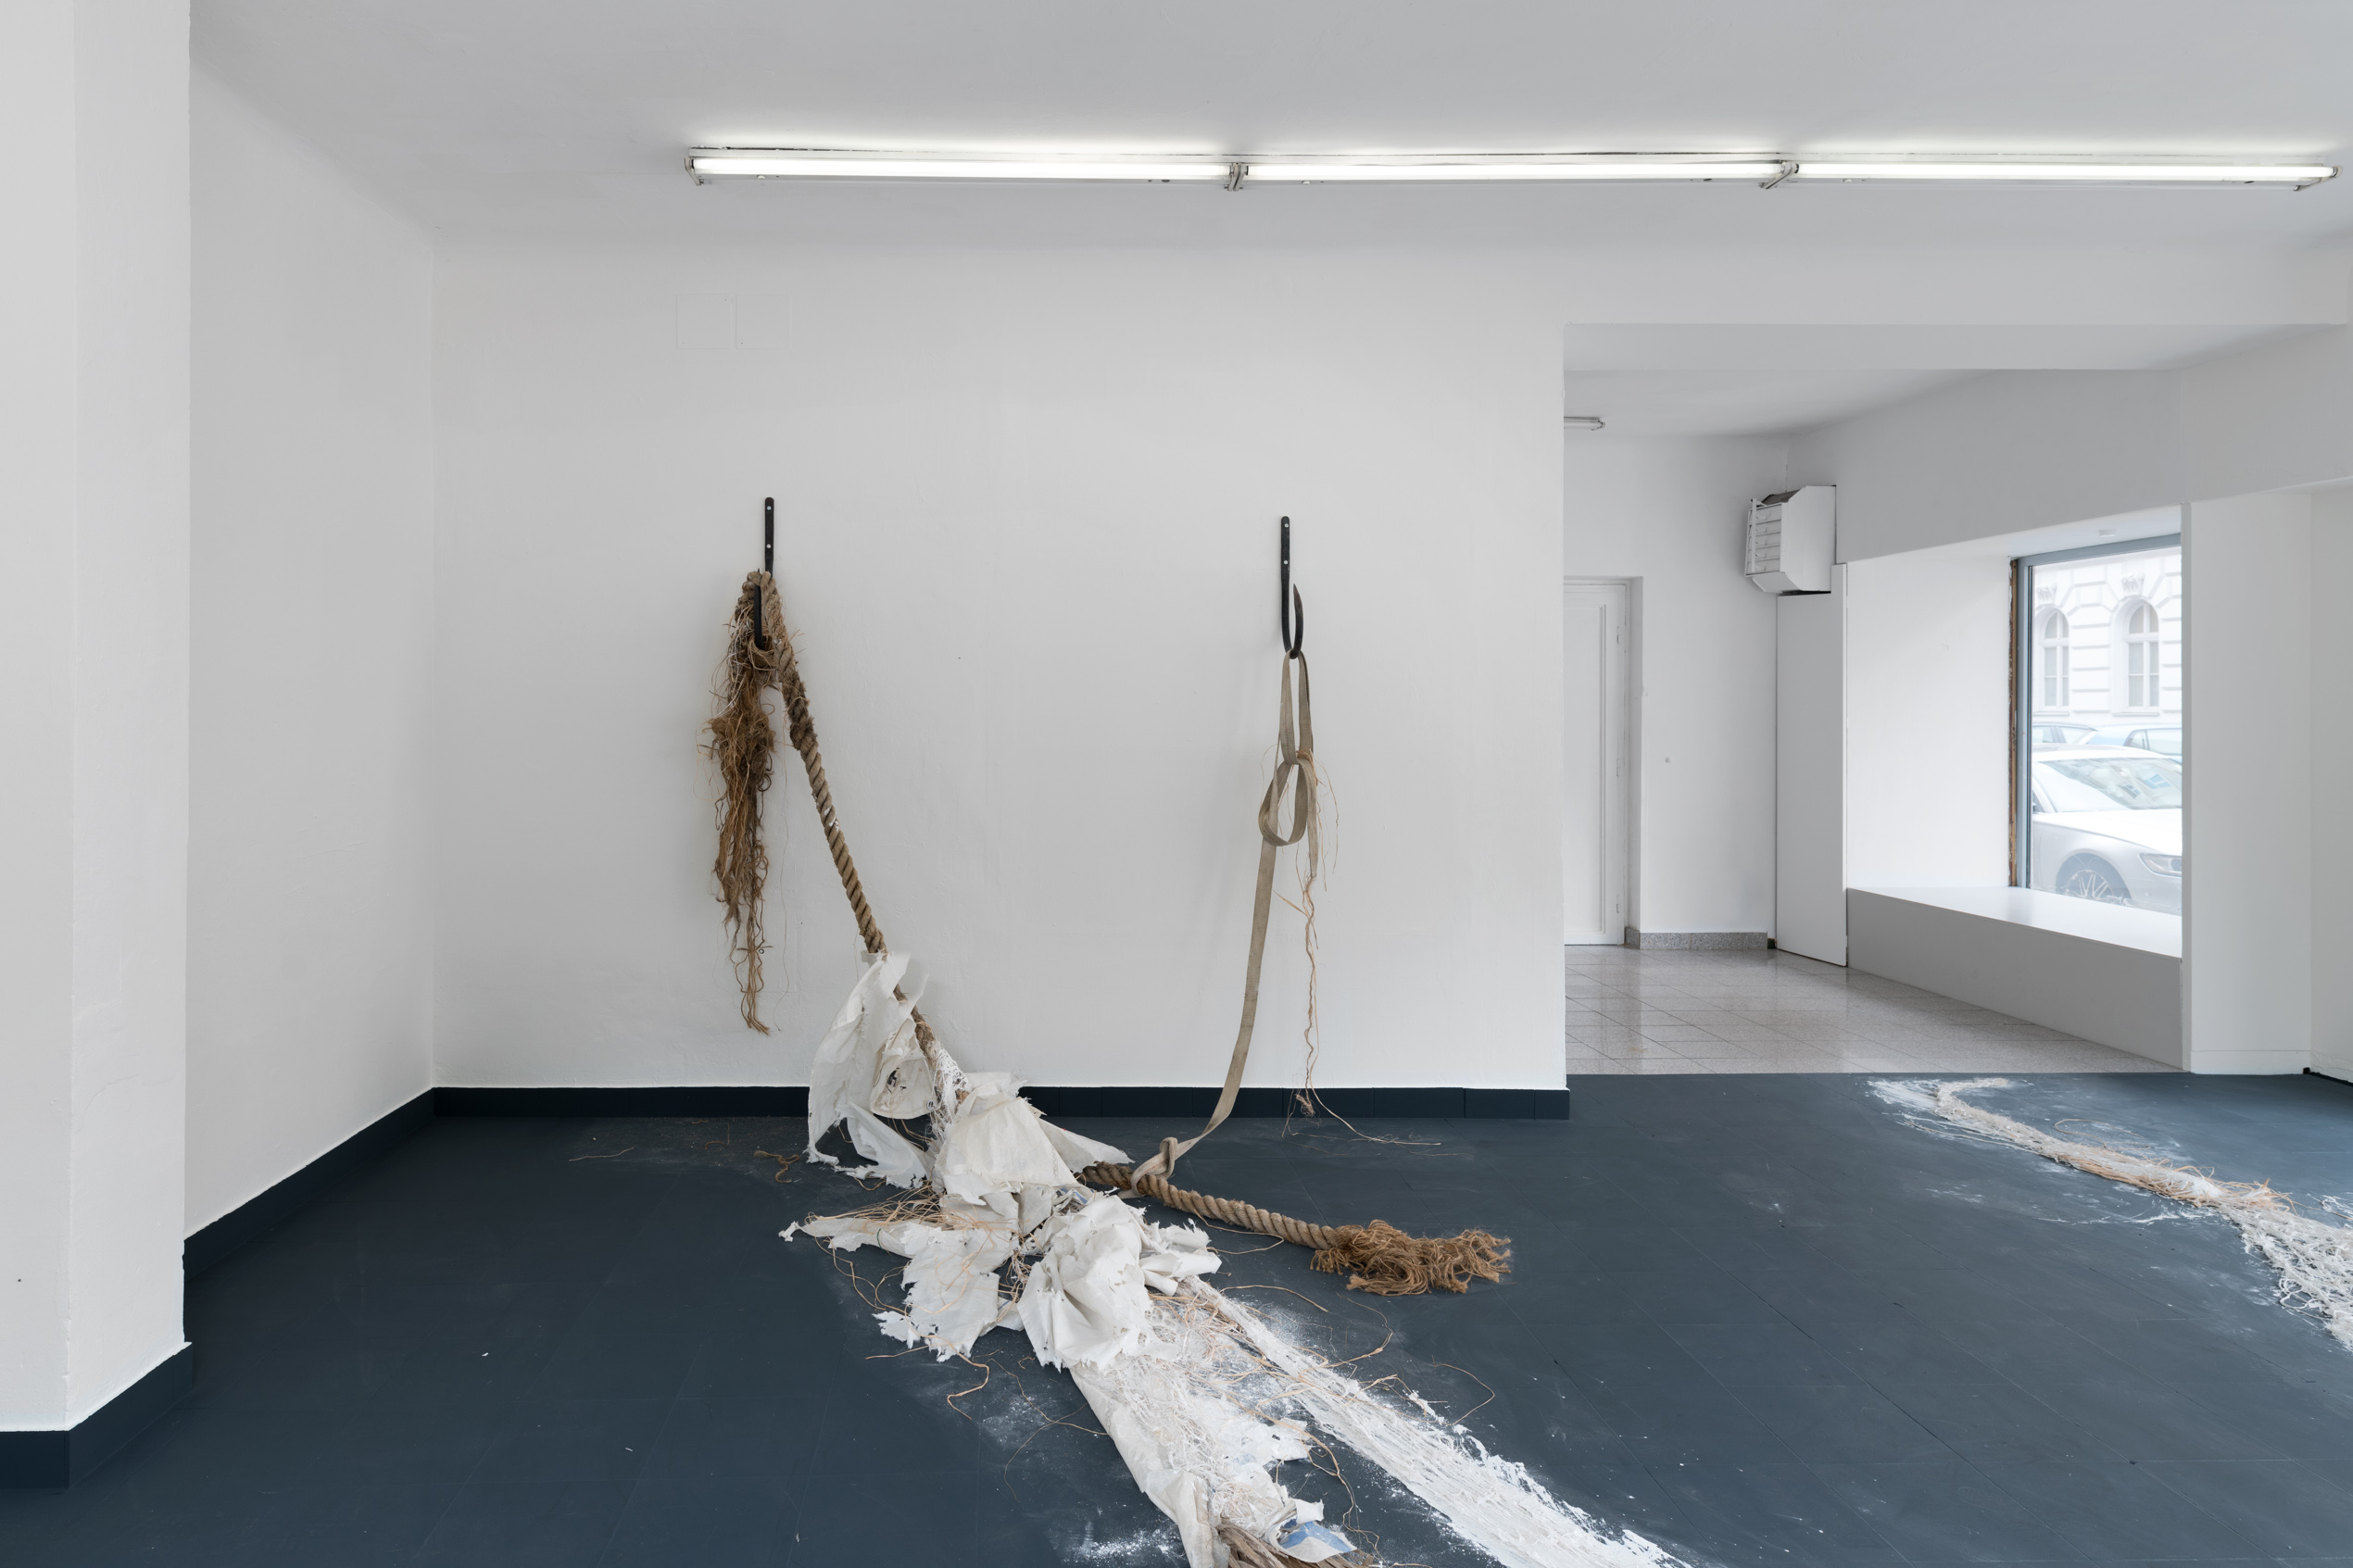 Dominique White, Abandon(ed) Vessel, installation view